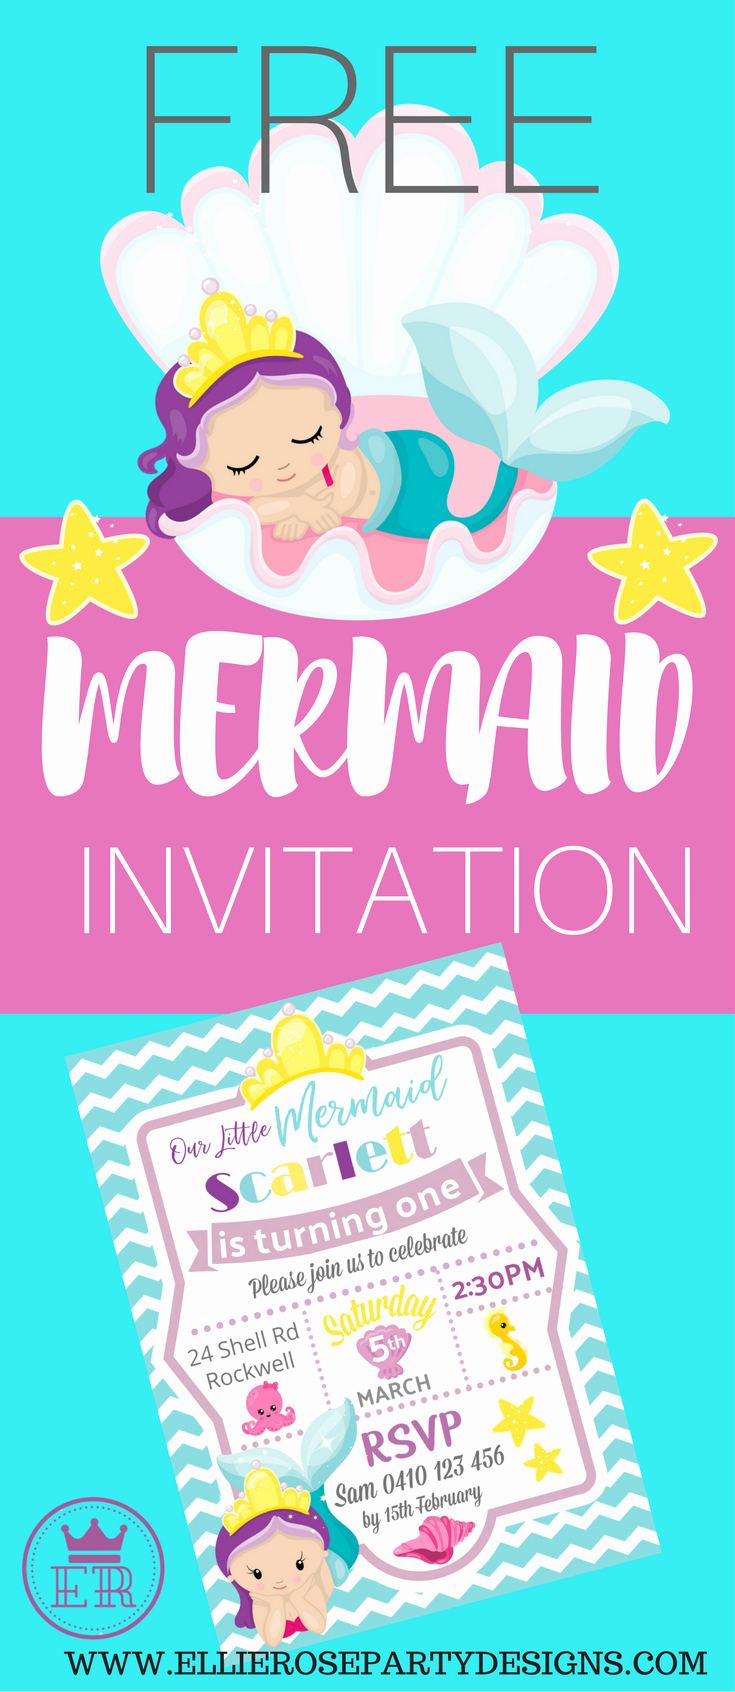 Under the Sea Invitation Template Fresh Free Mermaid Under the Sea Invitation Template to Step by Step Tutorial On How I Made